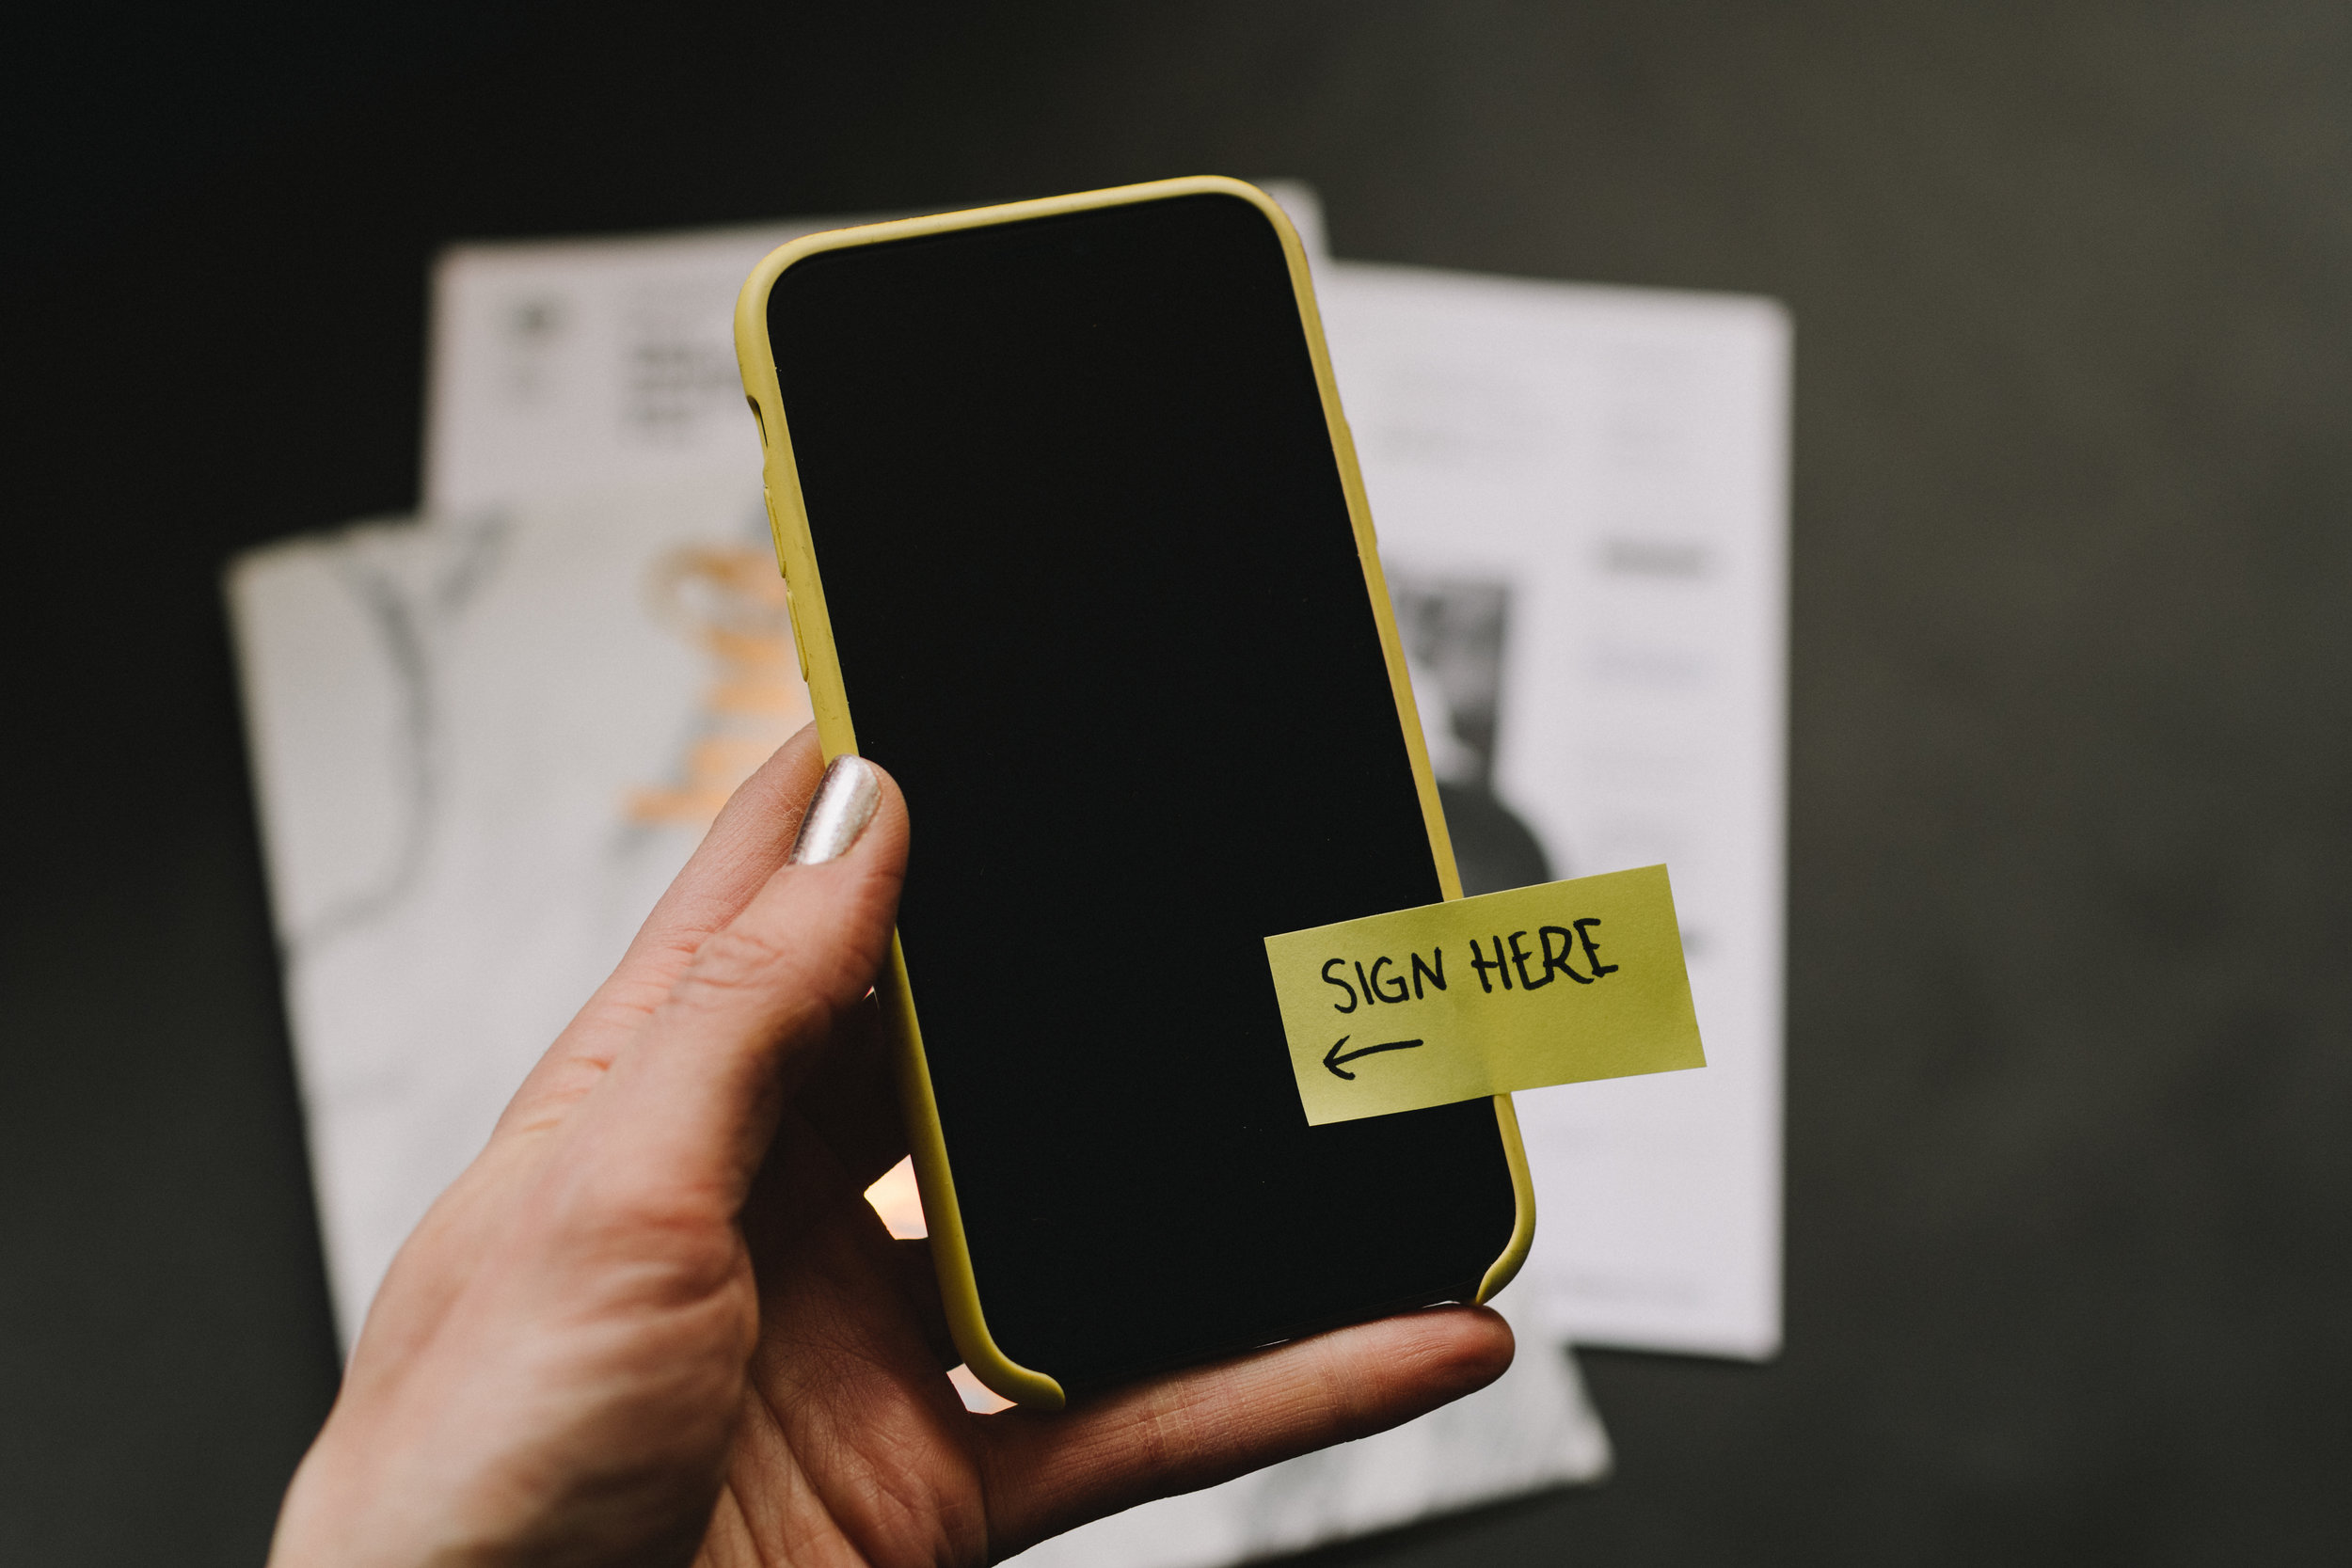 How to Electronically Sign PDF Documents without Printing and Scanning - PDFs are great for when you need to share official documents, but they can be more difficult to work with than other file formats when you need to edit or fill them out.